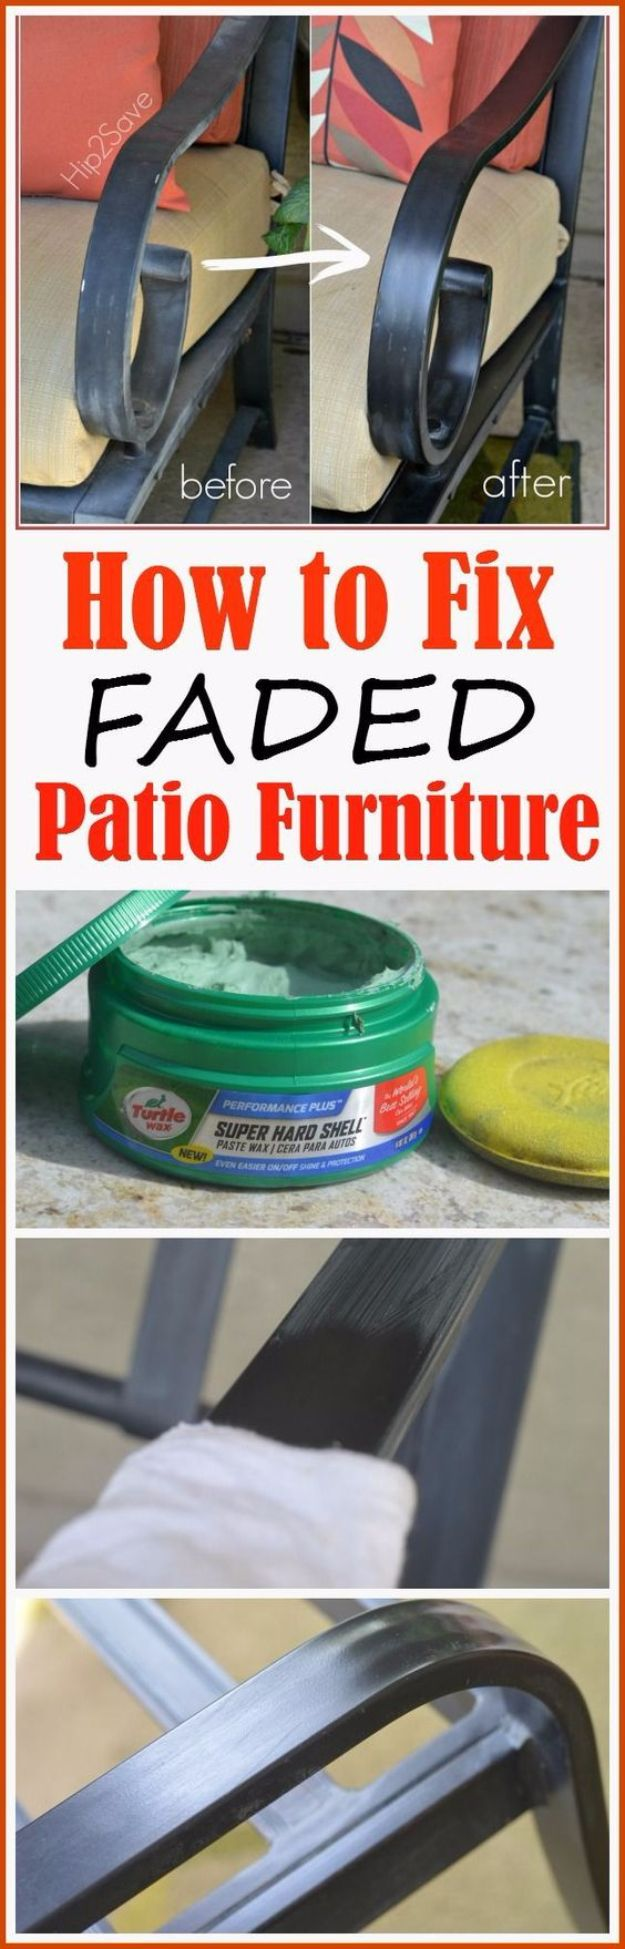 33 Home Repair Secrets From The Pros. Cleaning Patio FurniturePool ...